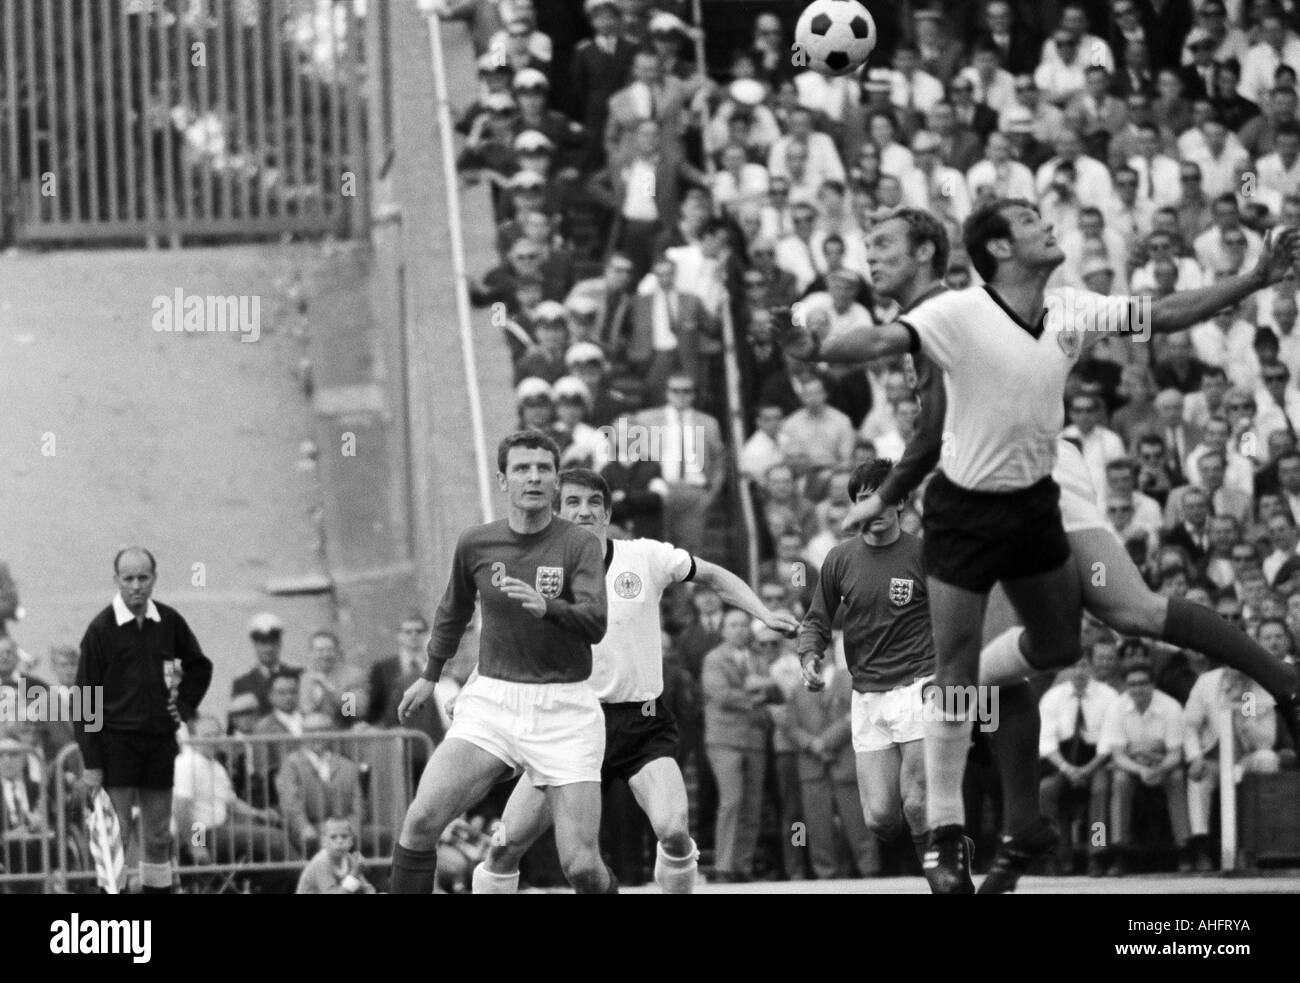 football, international match, 1968, Niedersachsen Stadium in Hanover, Germany versus England 1:0, scene of the match, f.l.t.r. Brian Labone (England), Hennes Loehr (FRG), Bobby Moore (England) in a header duel with Georg Volkert (FRG) - Stock Image